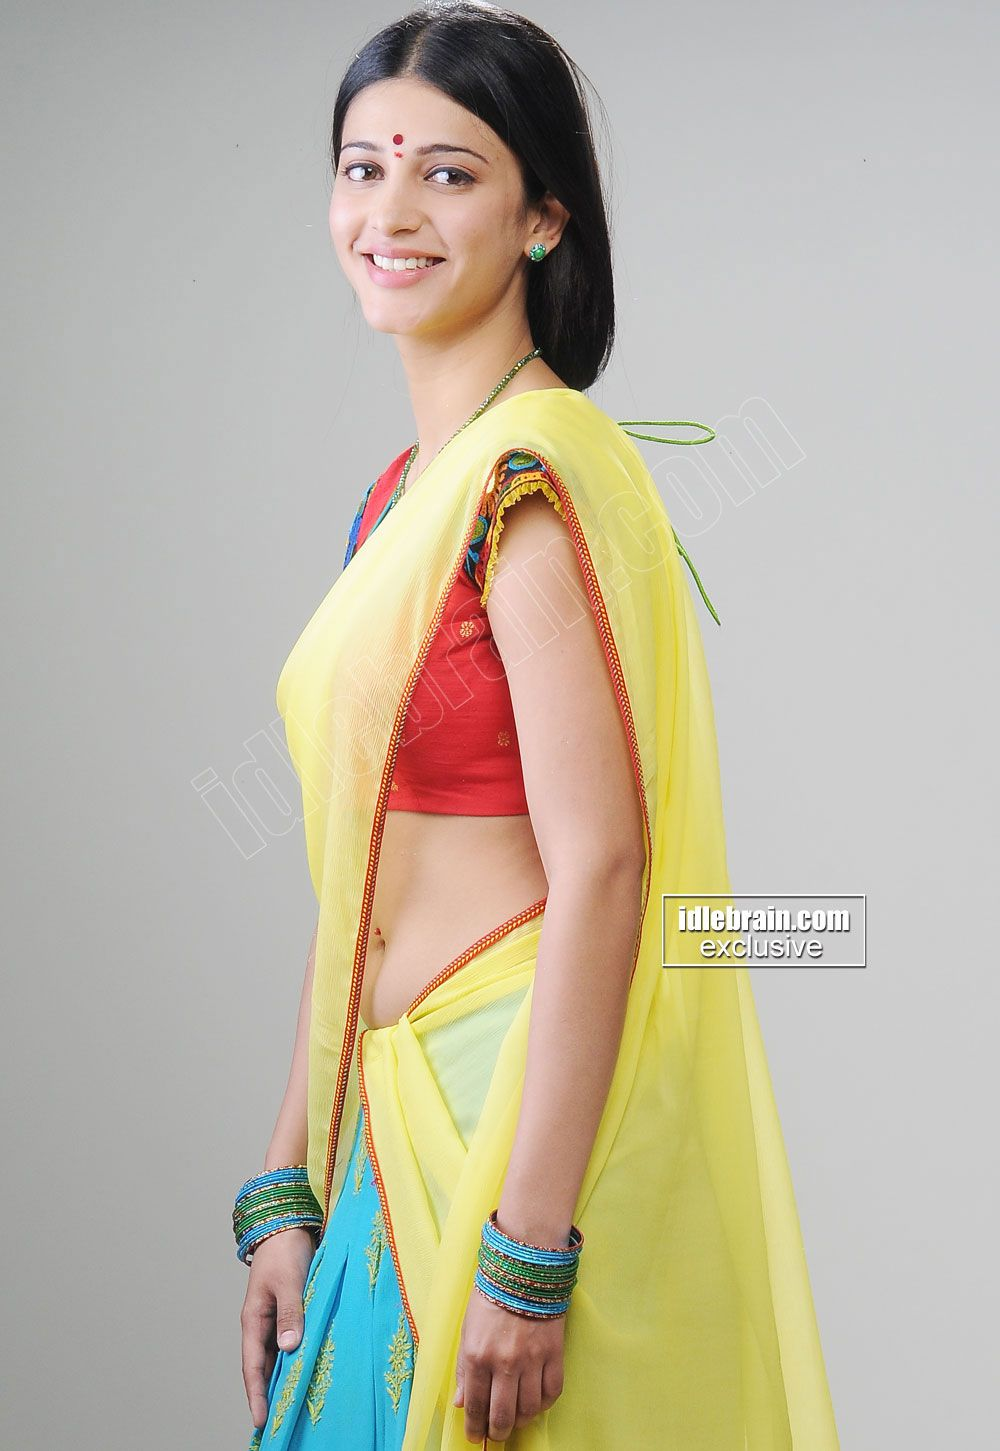 Shruthi Hassan Hot Navel Show In Saree Spicy Pictures | Shruthi ...